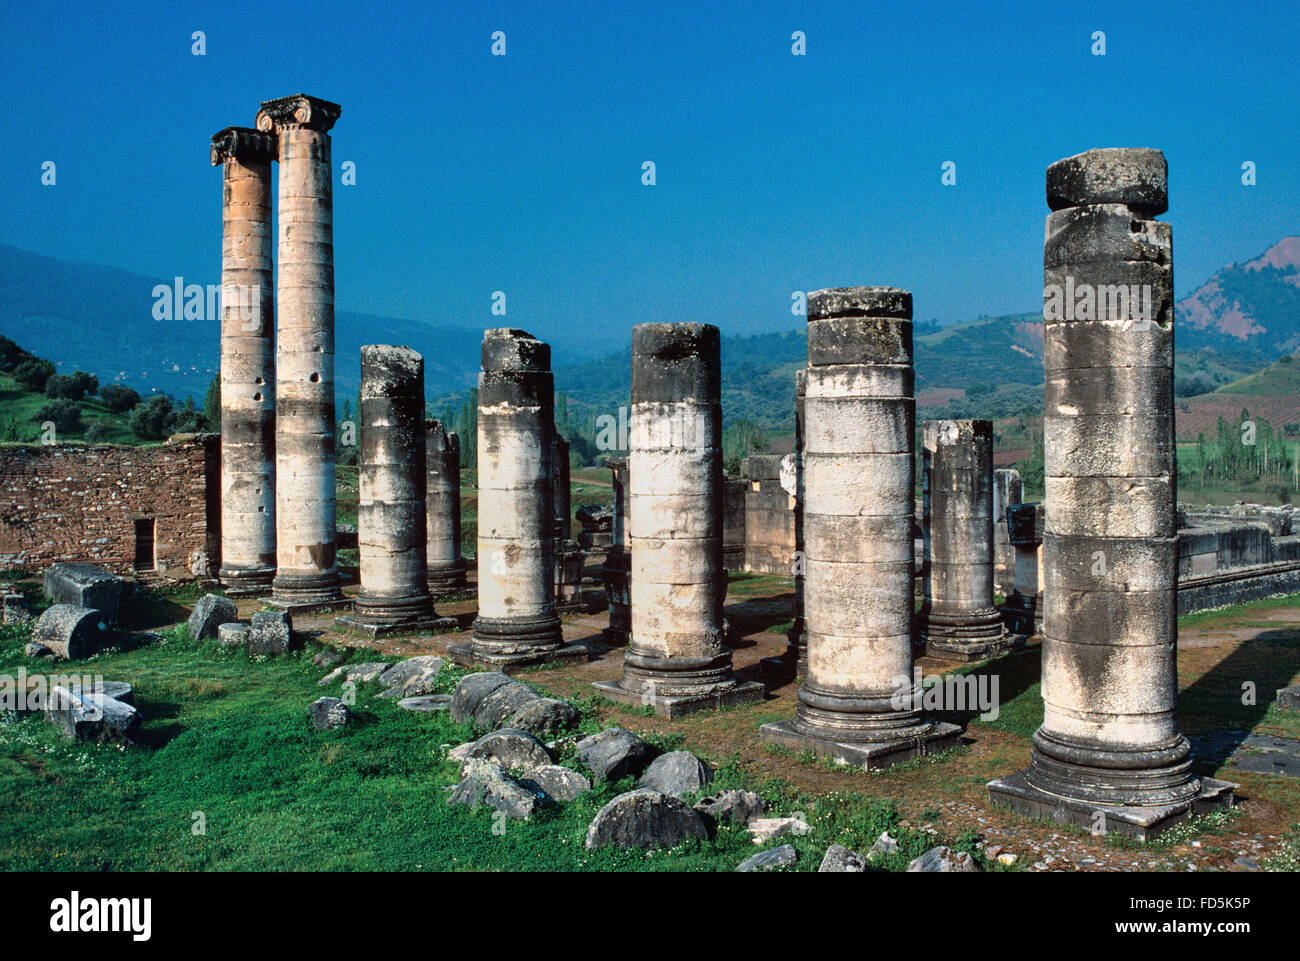 Columns of the Ancient Greek Temple of Artemis Sardis or Sardes Turkey - Stock Image